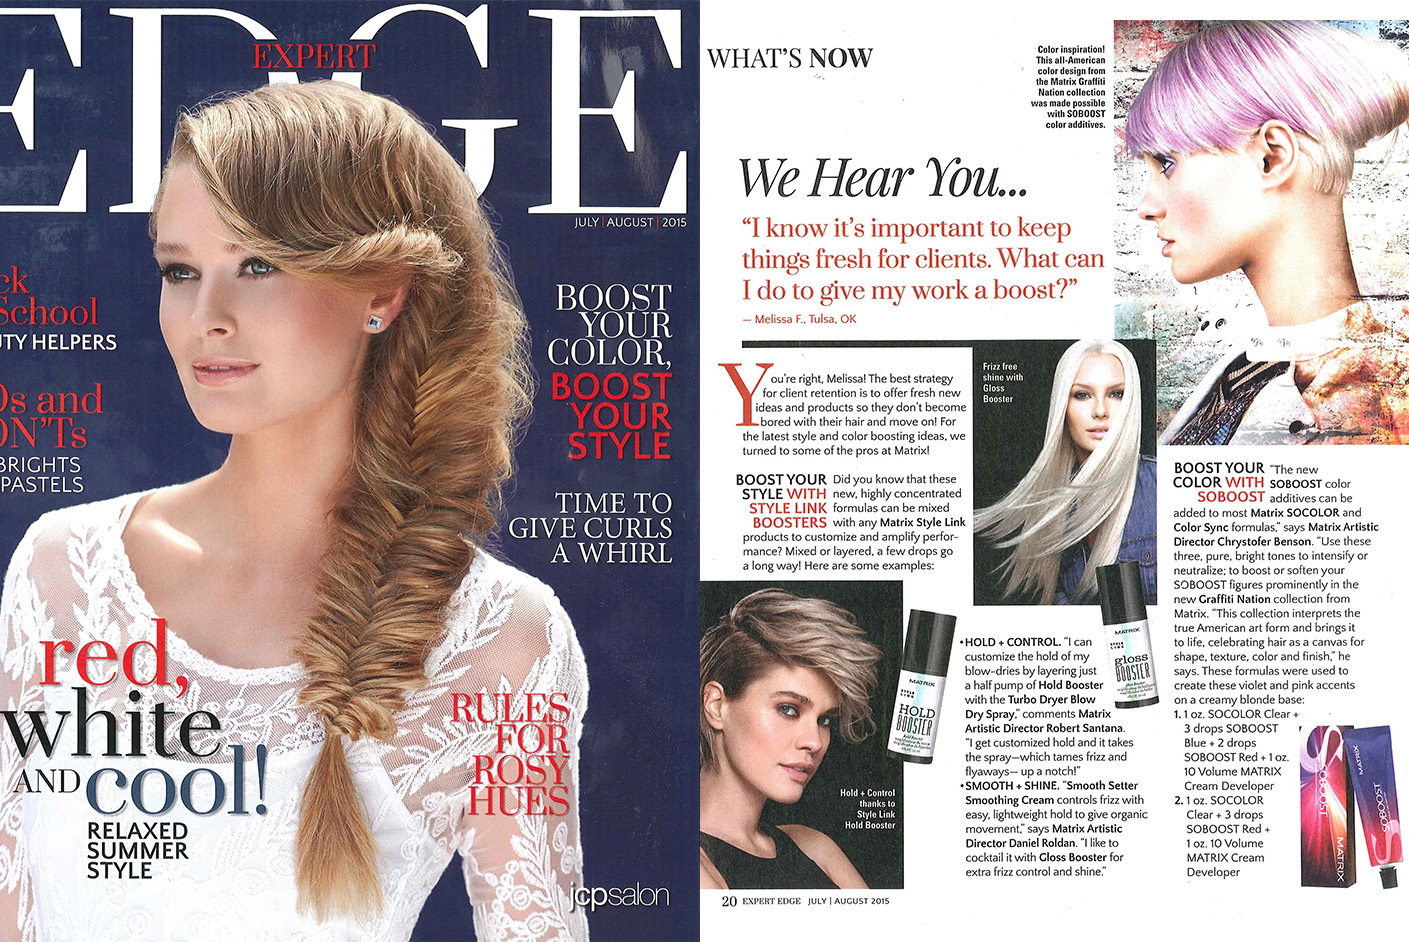 Matrix Haircare As Seen In Edge Magazine Full Spread